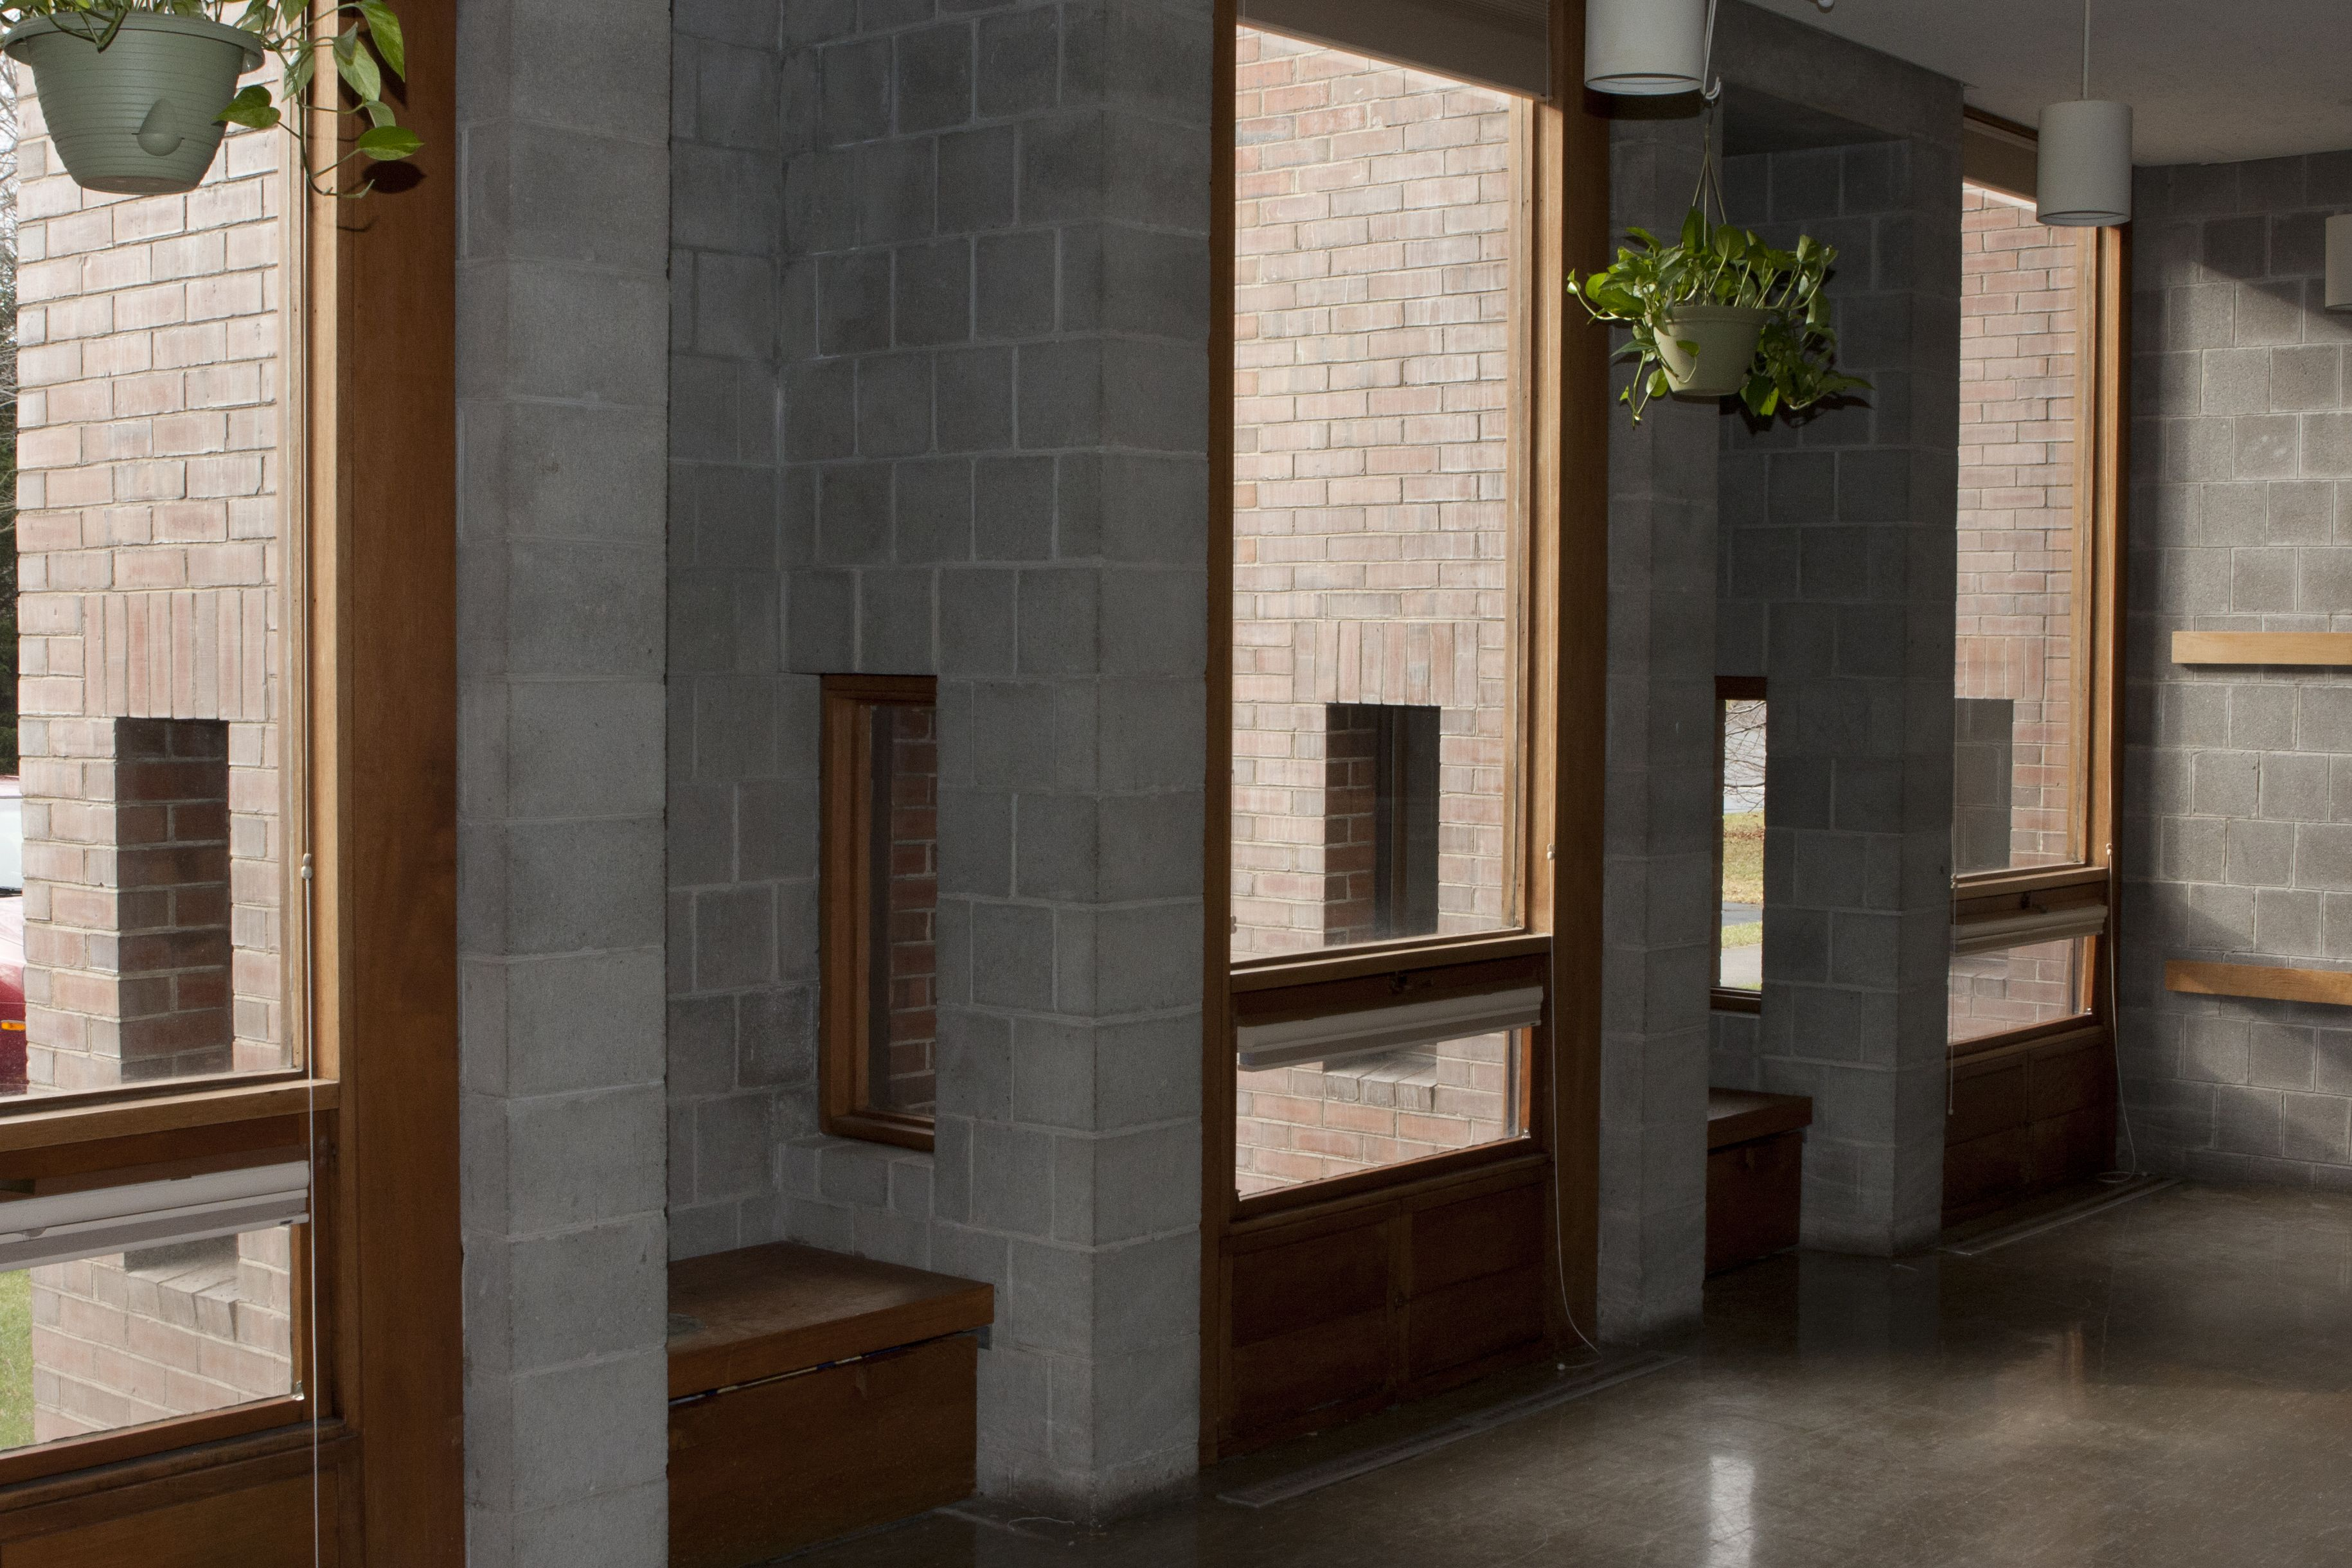 First unitarian church of rochester louis i kahn pinterest structuralism louis kahn and for Interior designers rochester ny